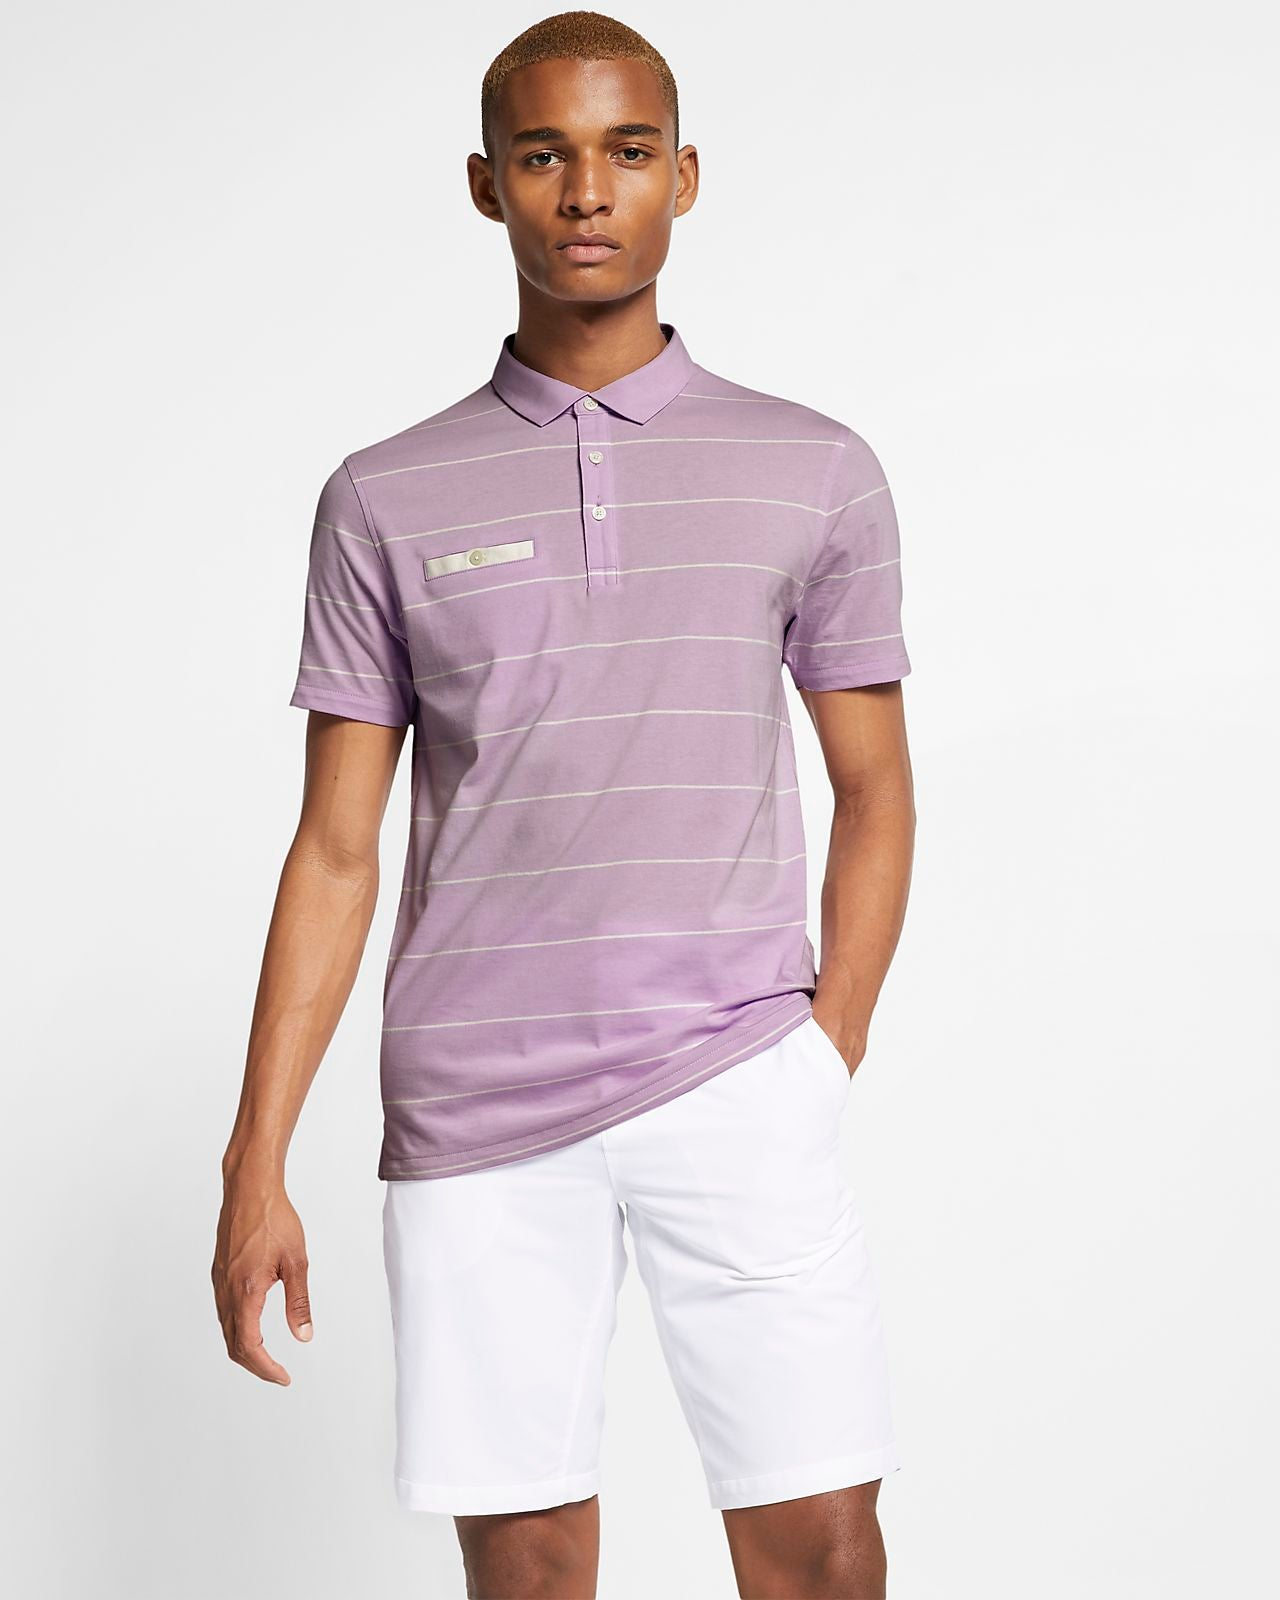 Men's Nike Golf Dri Fit Player Striped Polo Shirt.      AT8946-543